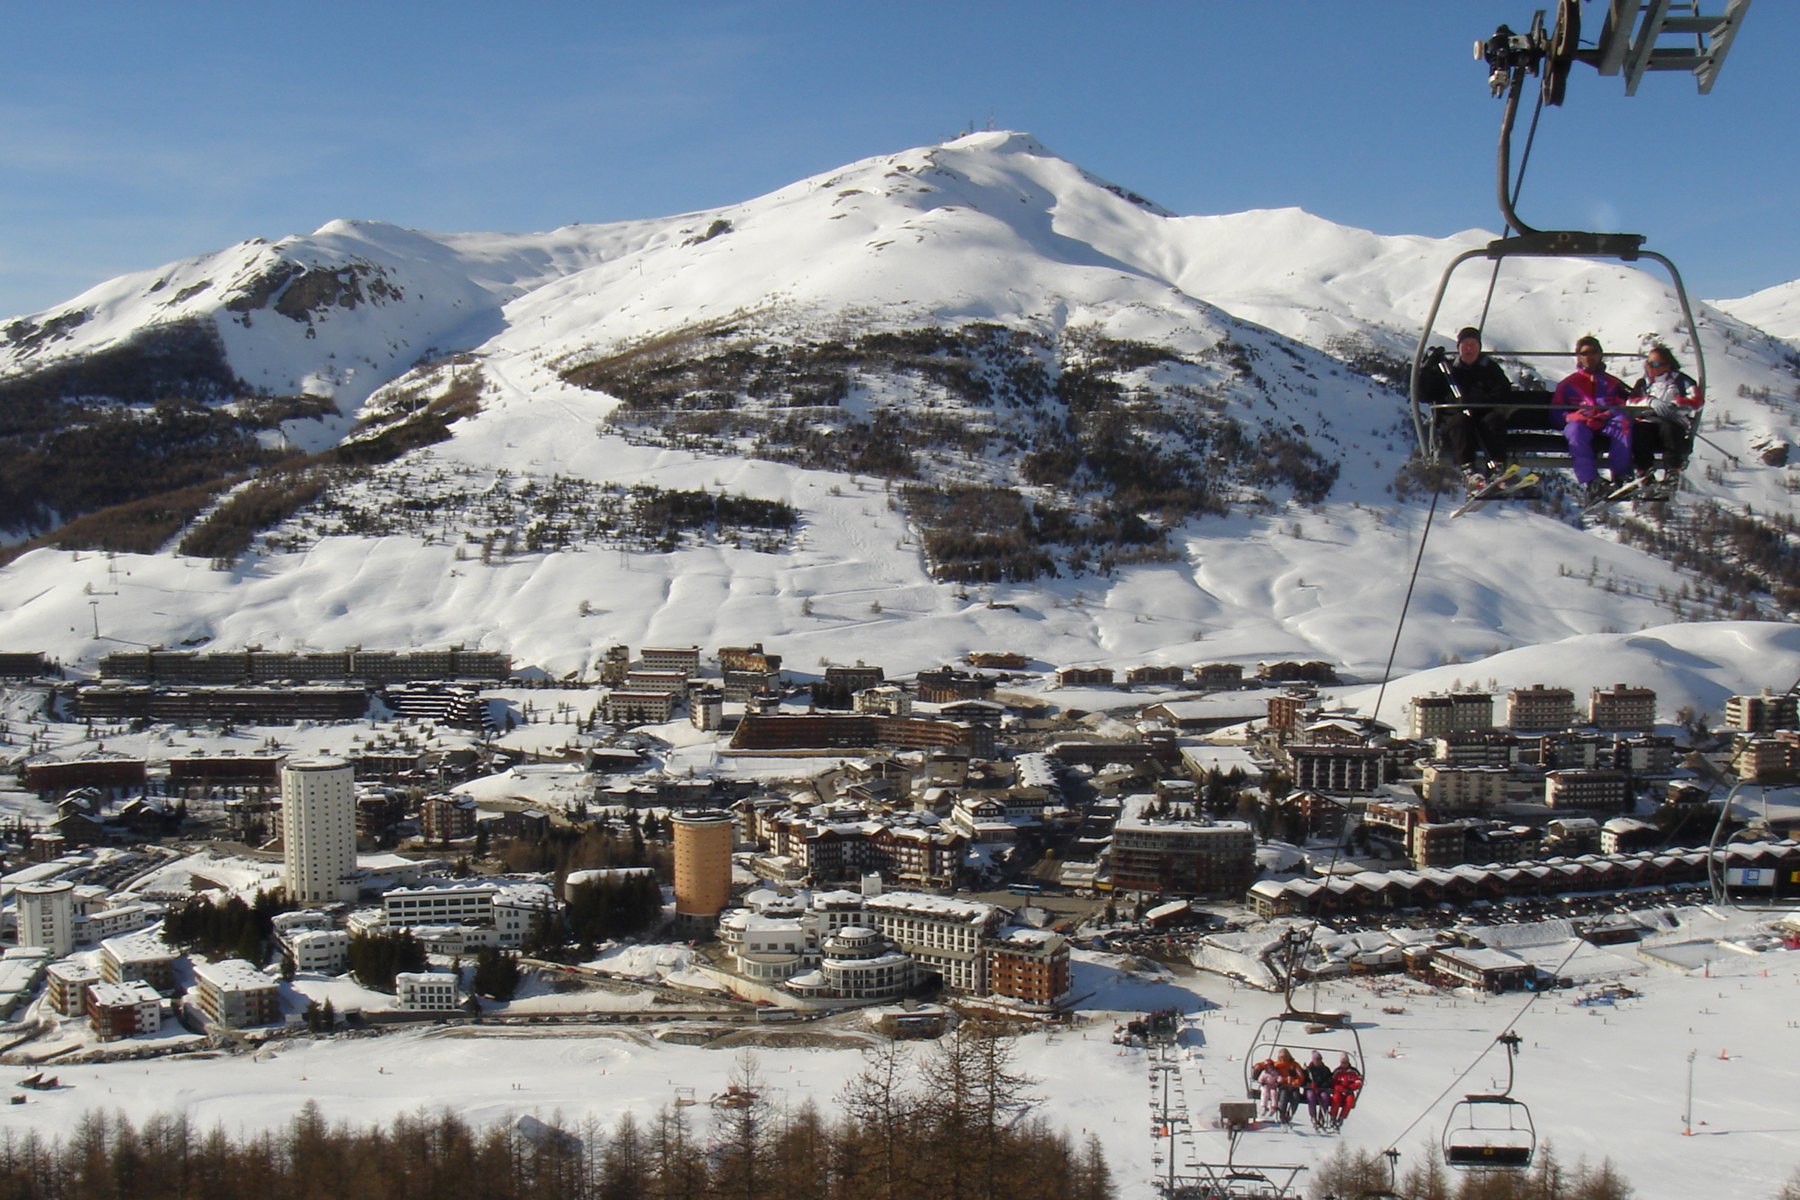 The village of Sestriere, Italy.